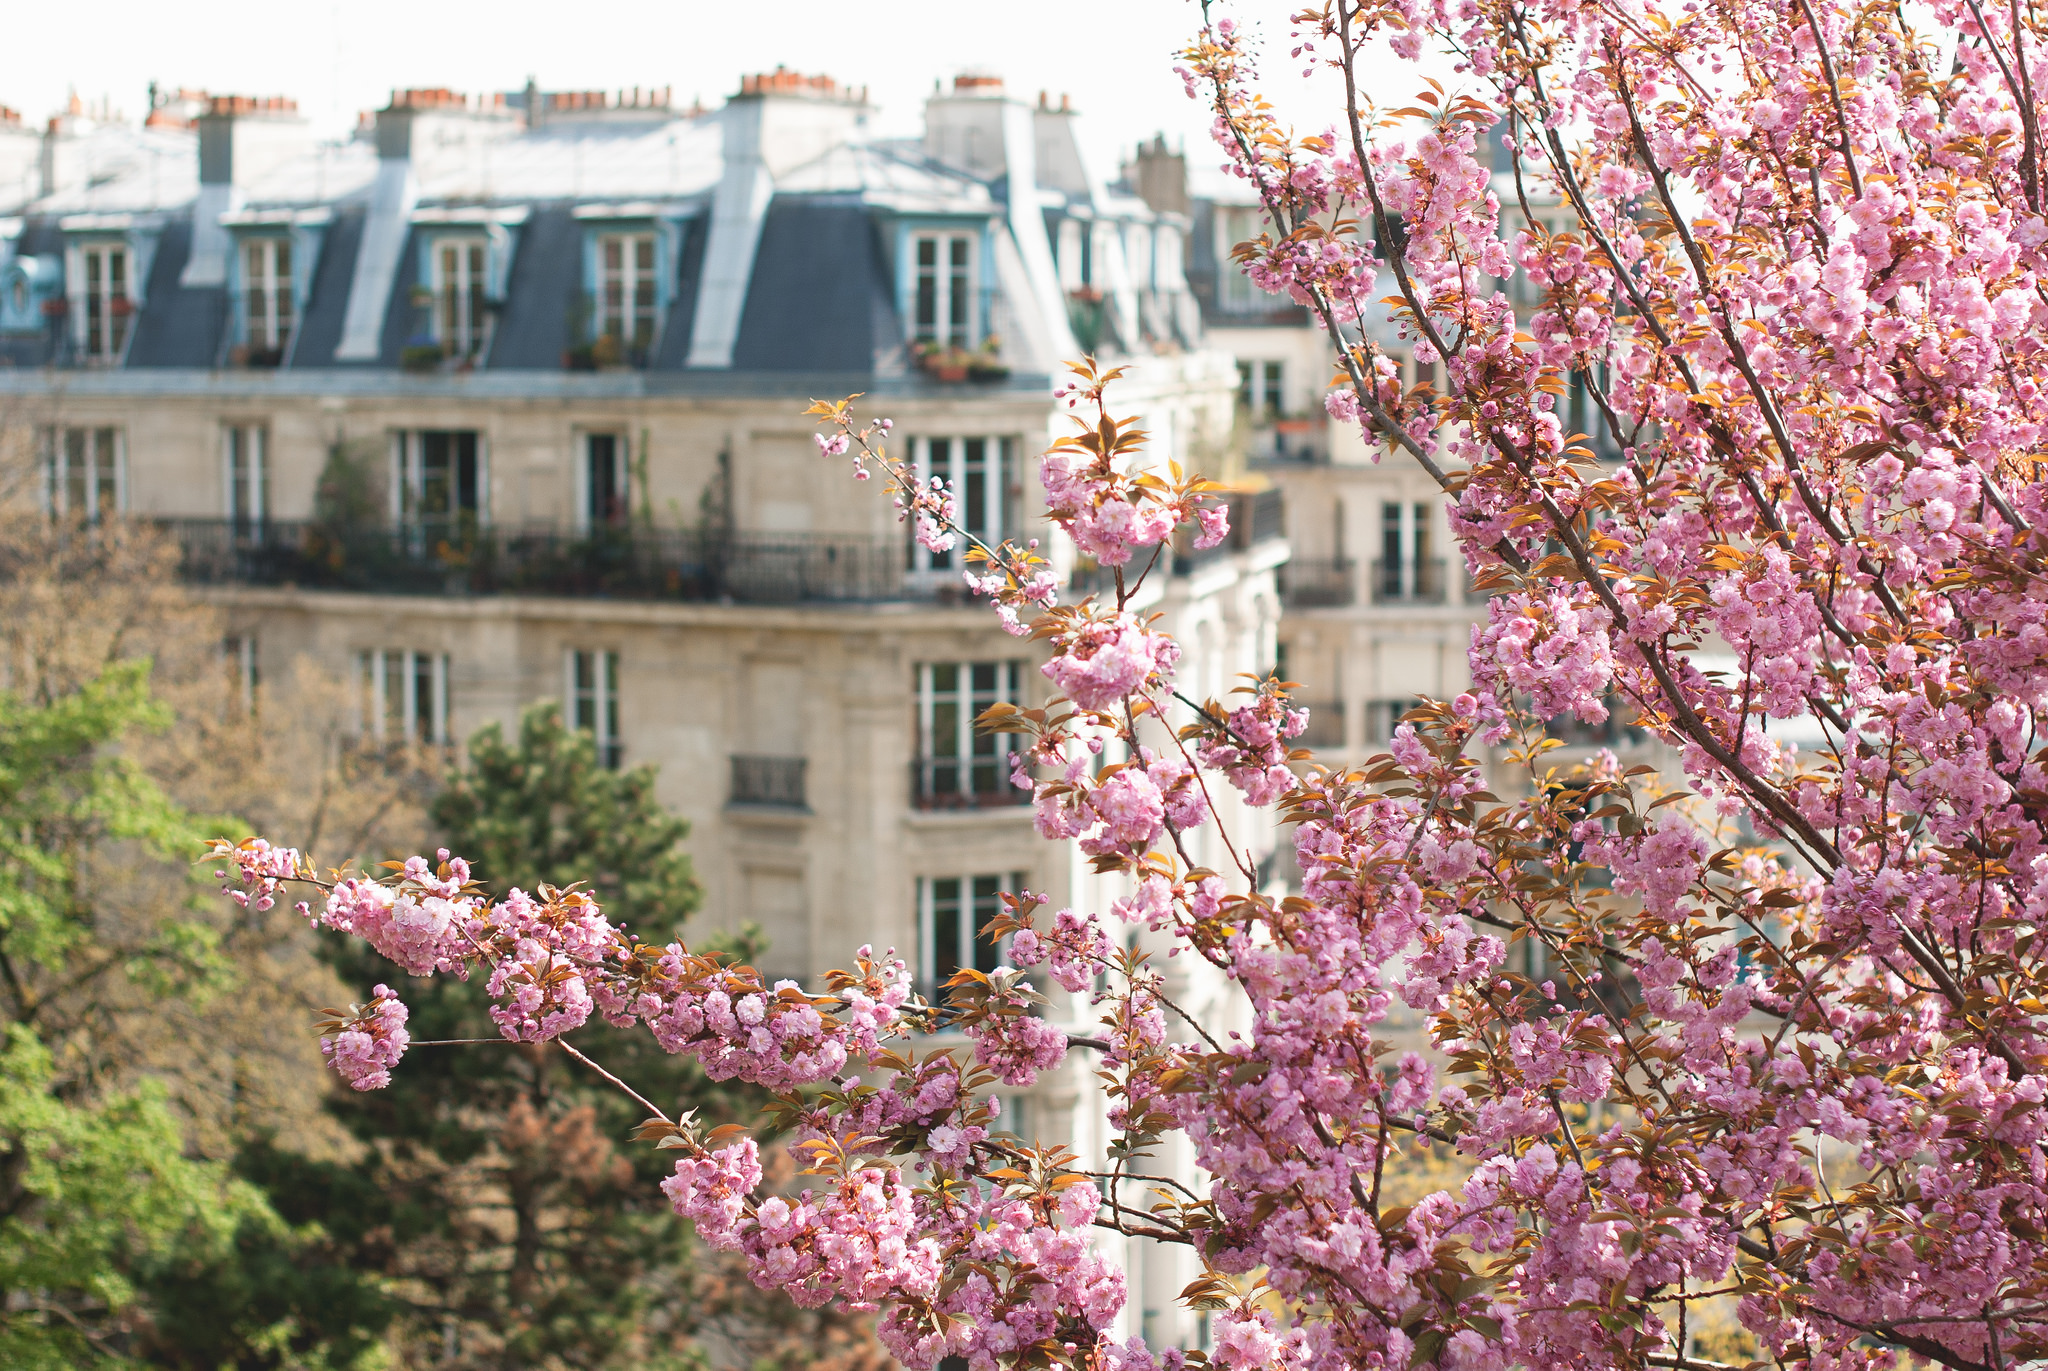 Paris in April is the best time to visit as it's sunny and the city's trees are in full bloom.